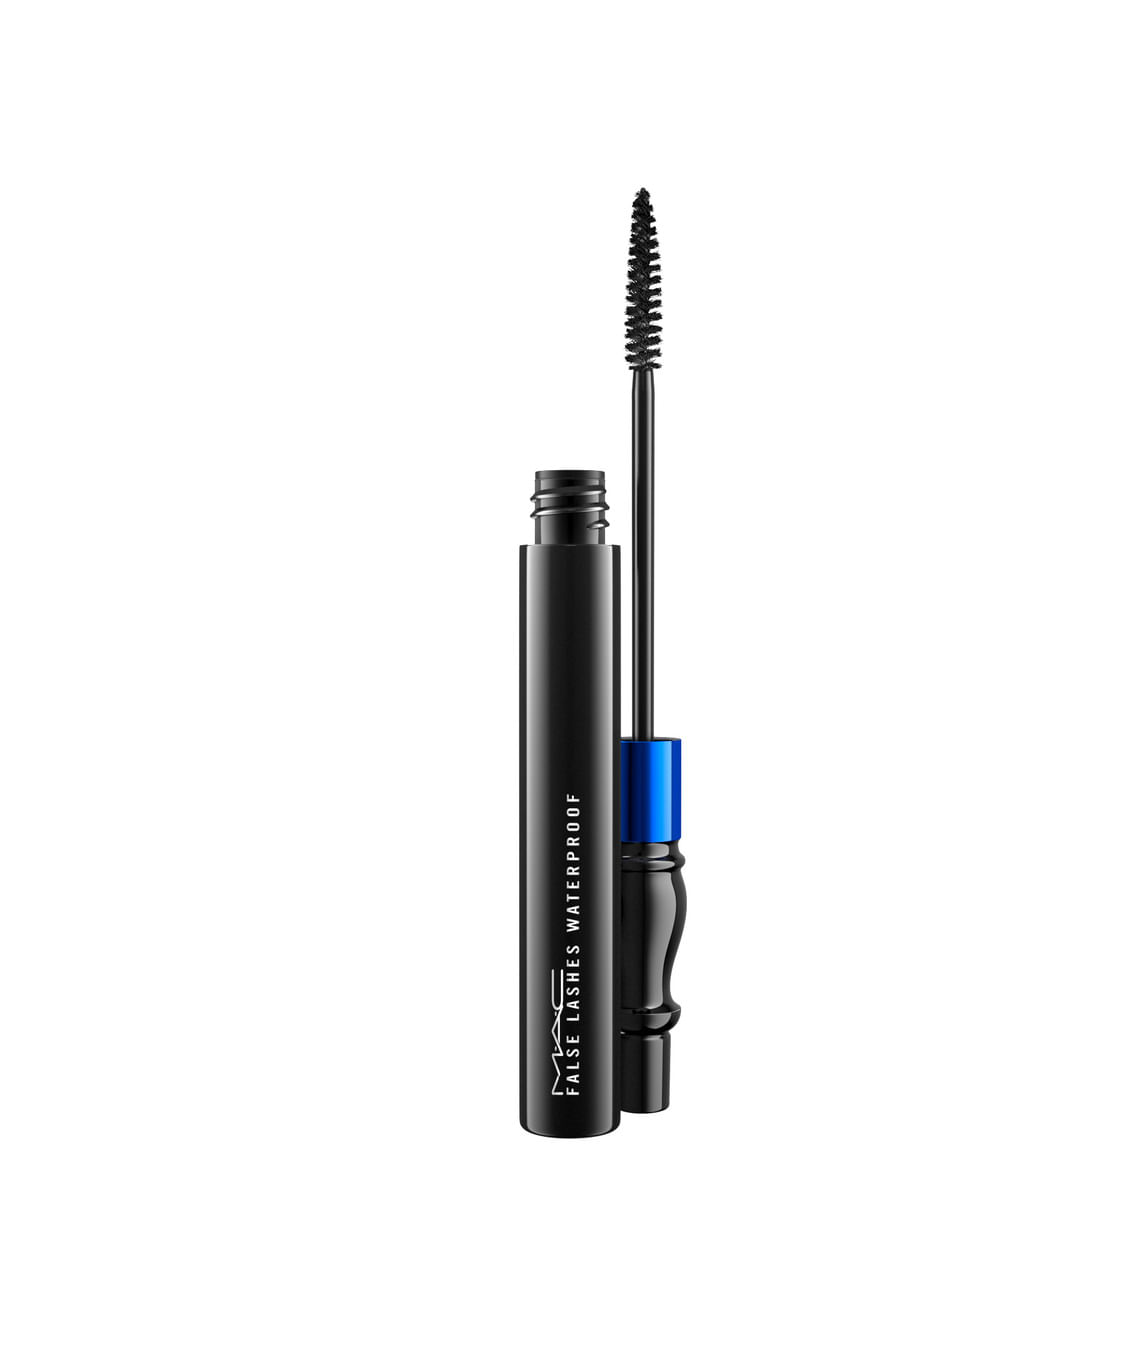 Pestañina False Lashes Waterproof Mascara Stay Black 8 g